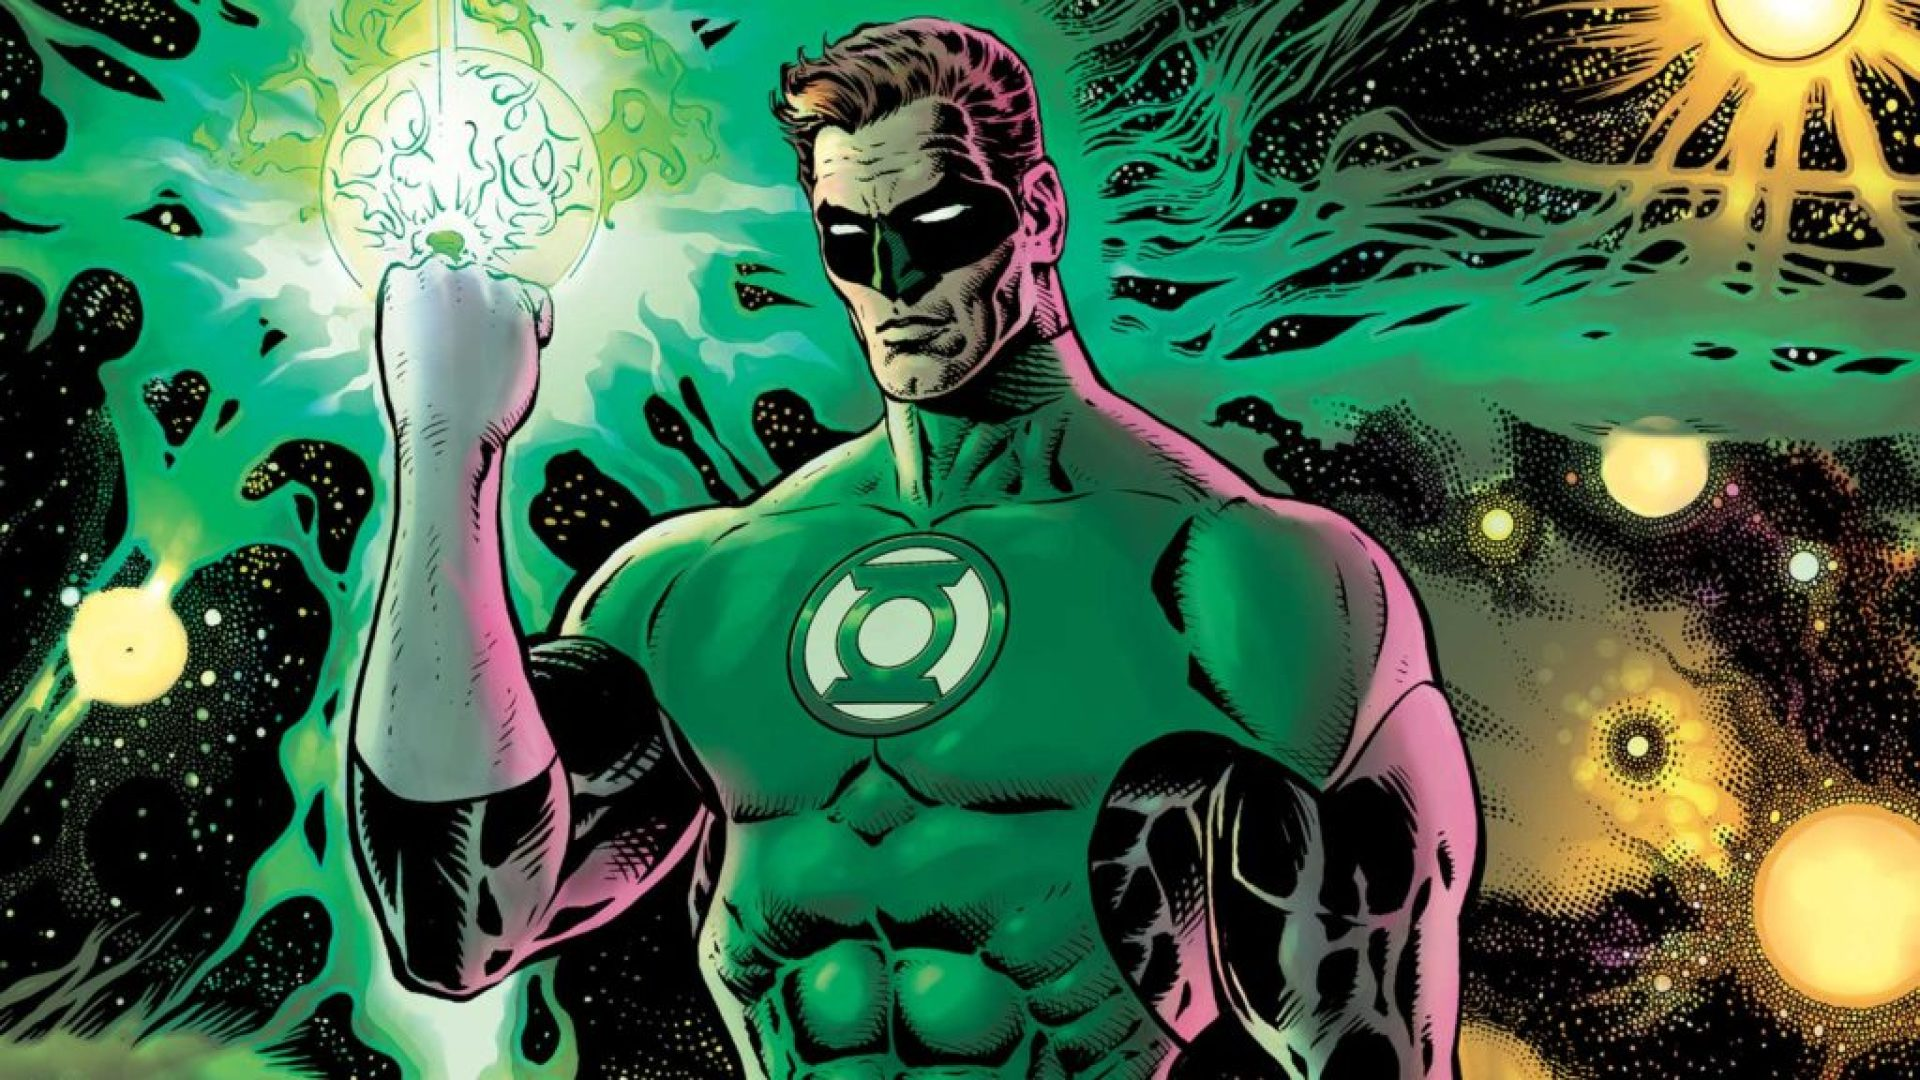 DC Comics new The Green Lantern #1 by Grant Morrison and Liam Sharp